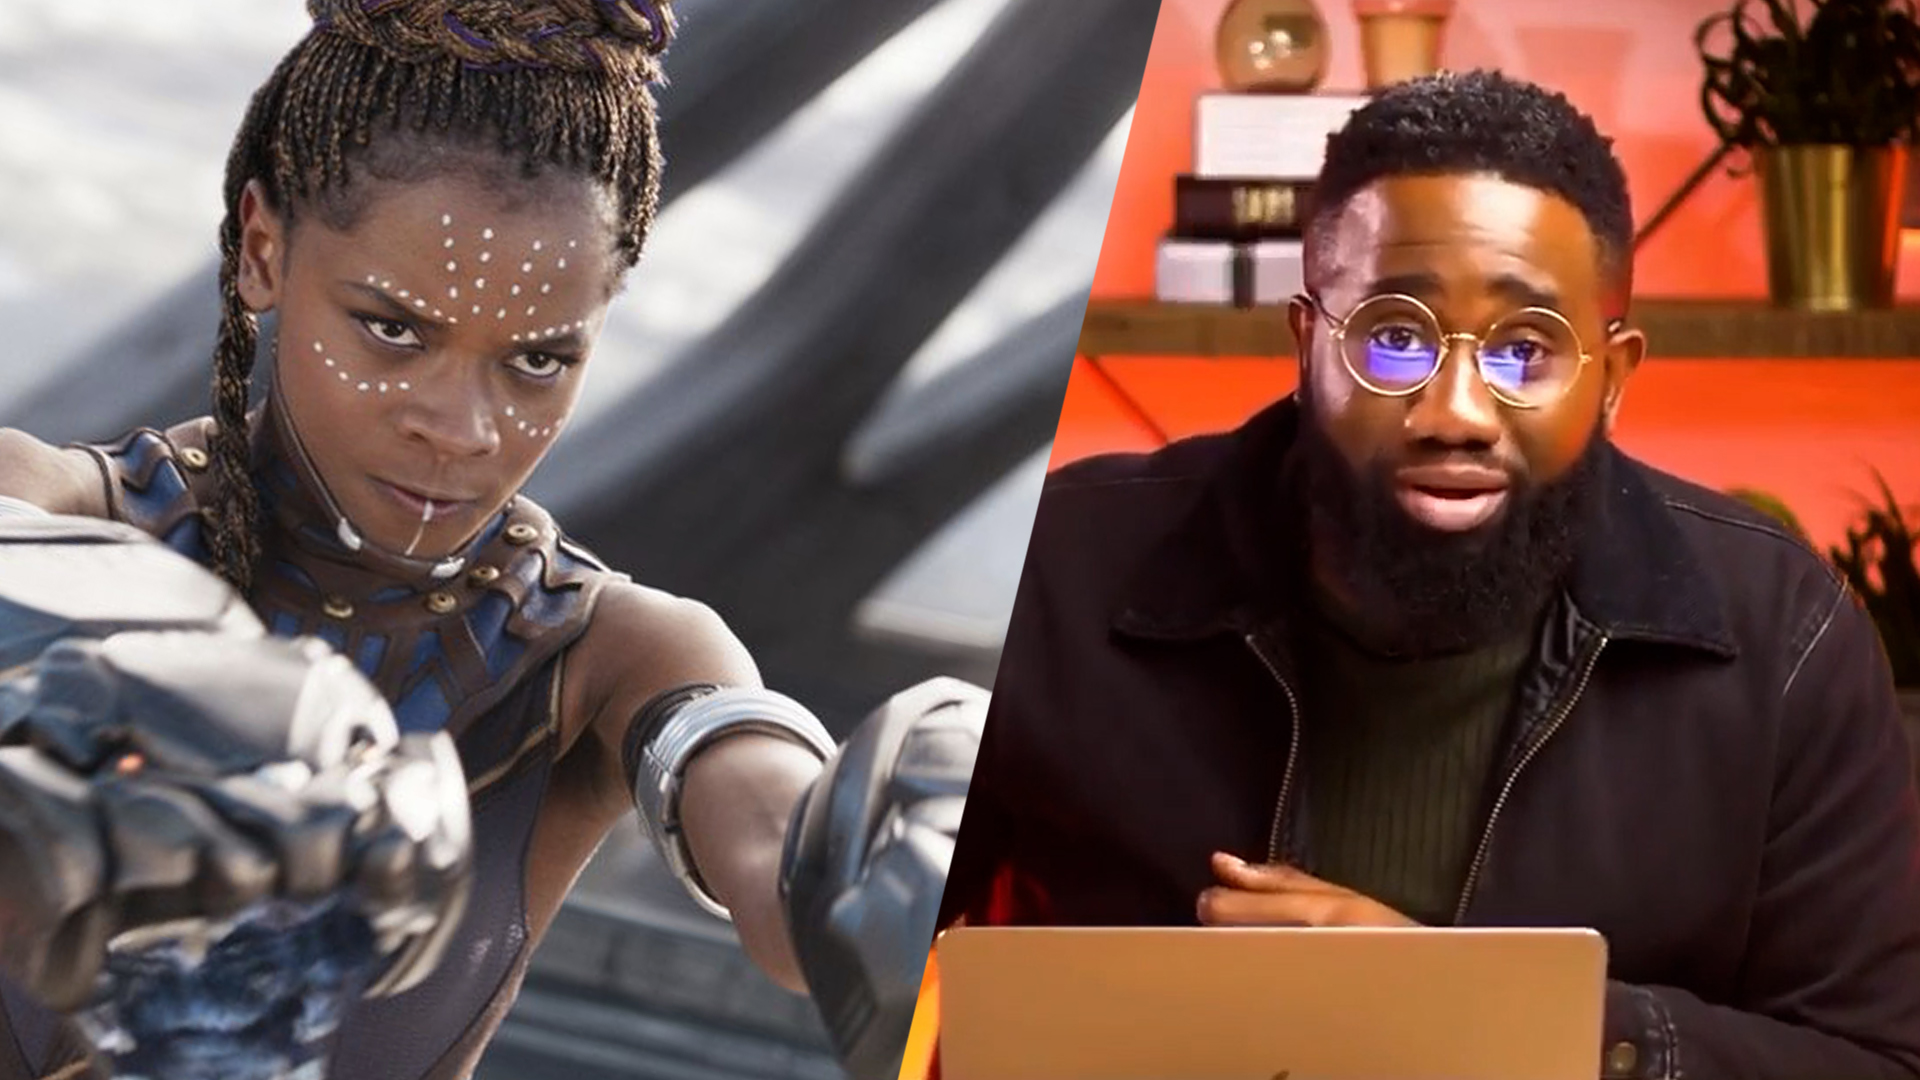 Black Panther's Letitia Wright Angers Many with Anti-Vaccine Tweets After Podcast